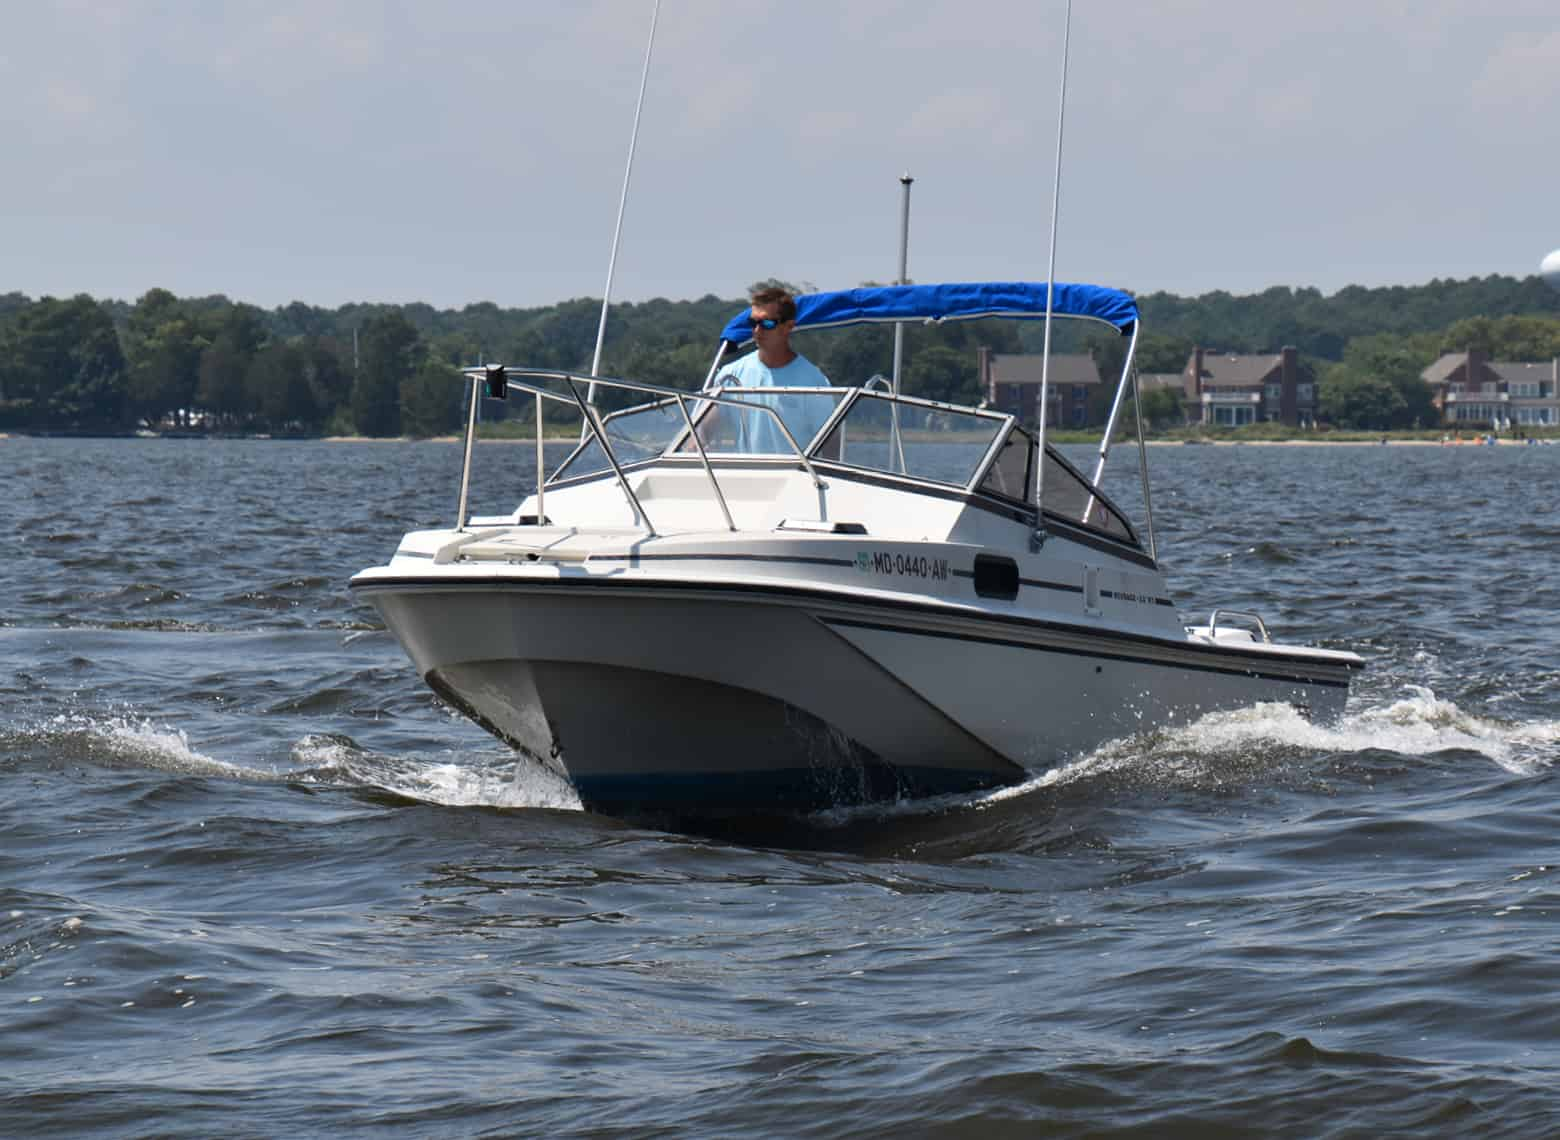 SOLD: Charity Boat Auction Feature: Boston Whaler 22